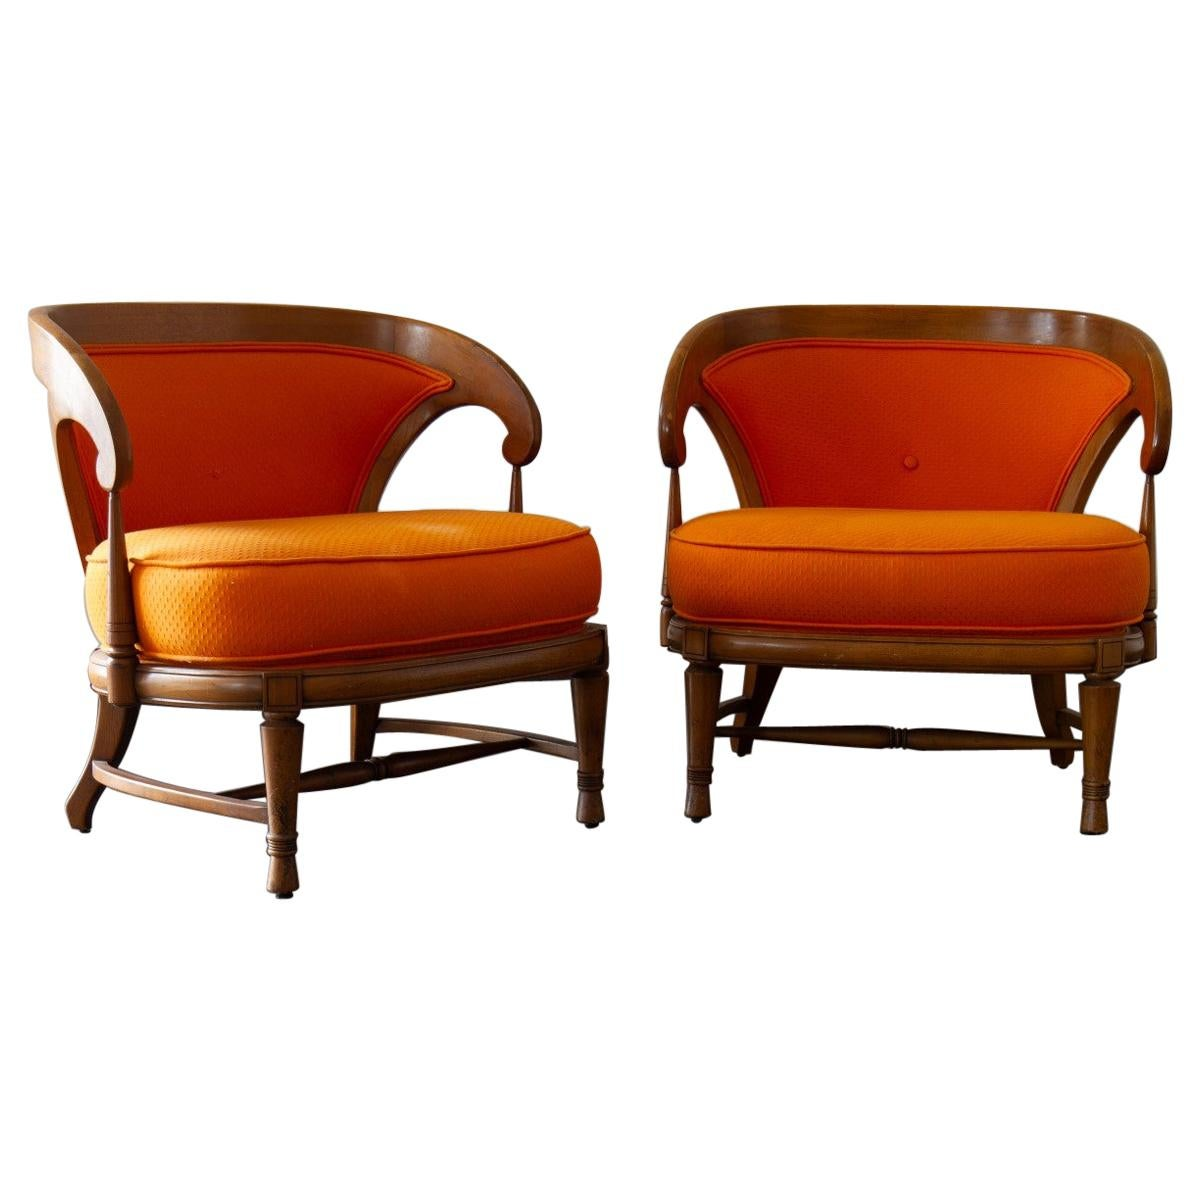 Pair of Wooden Framed Chairs, circa1970